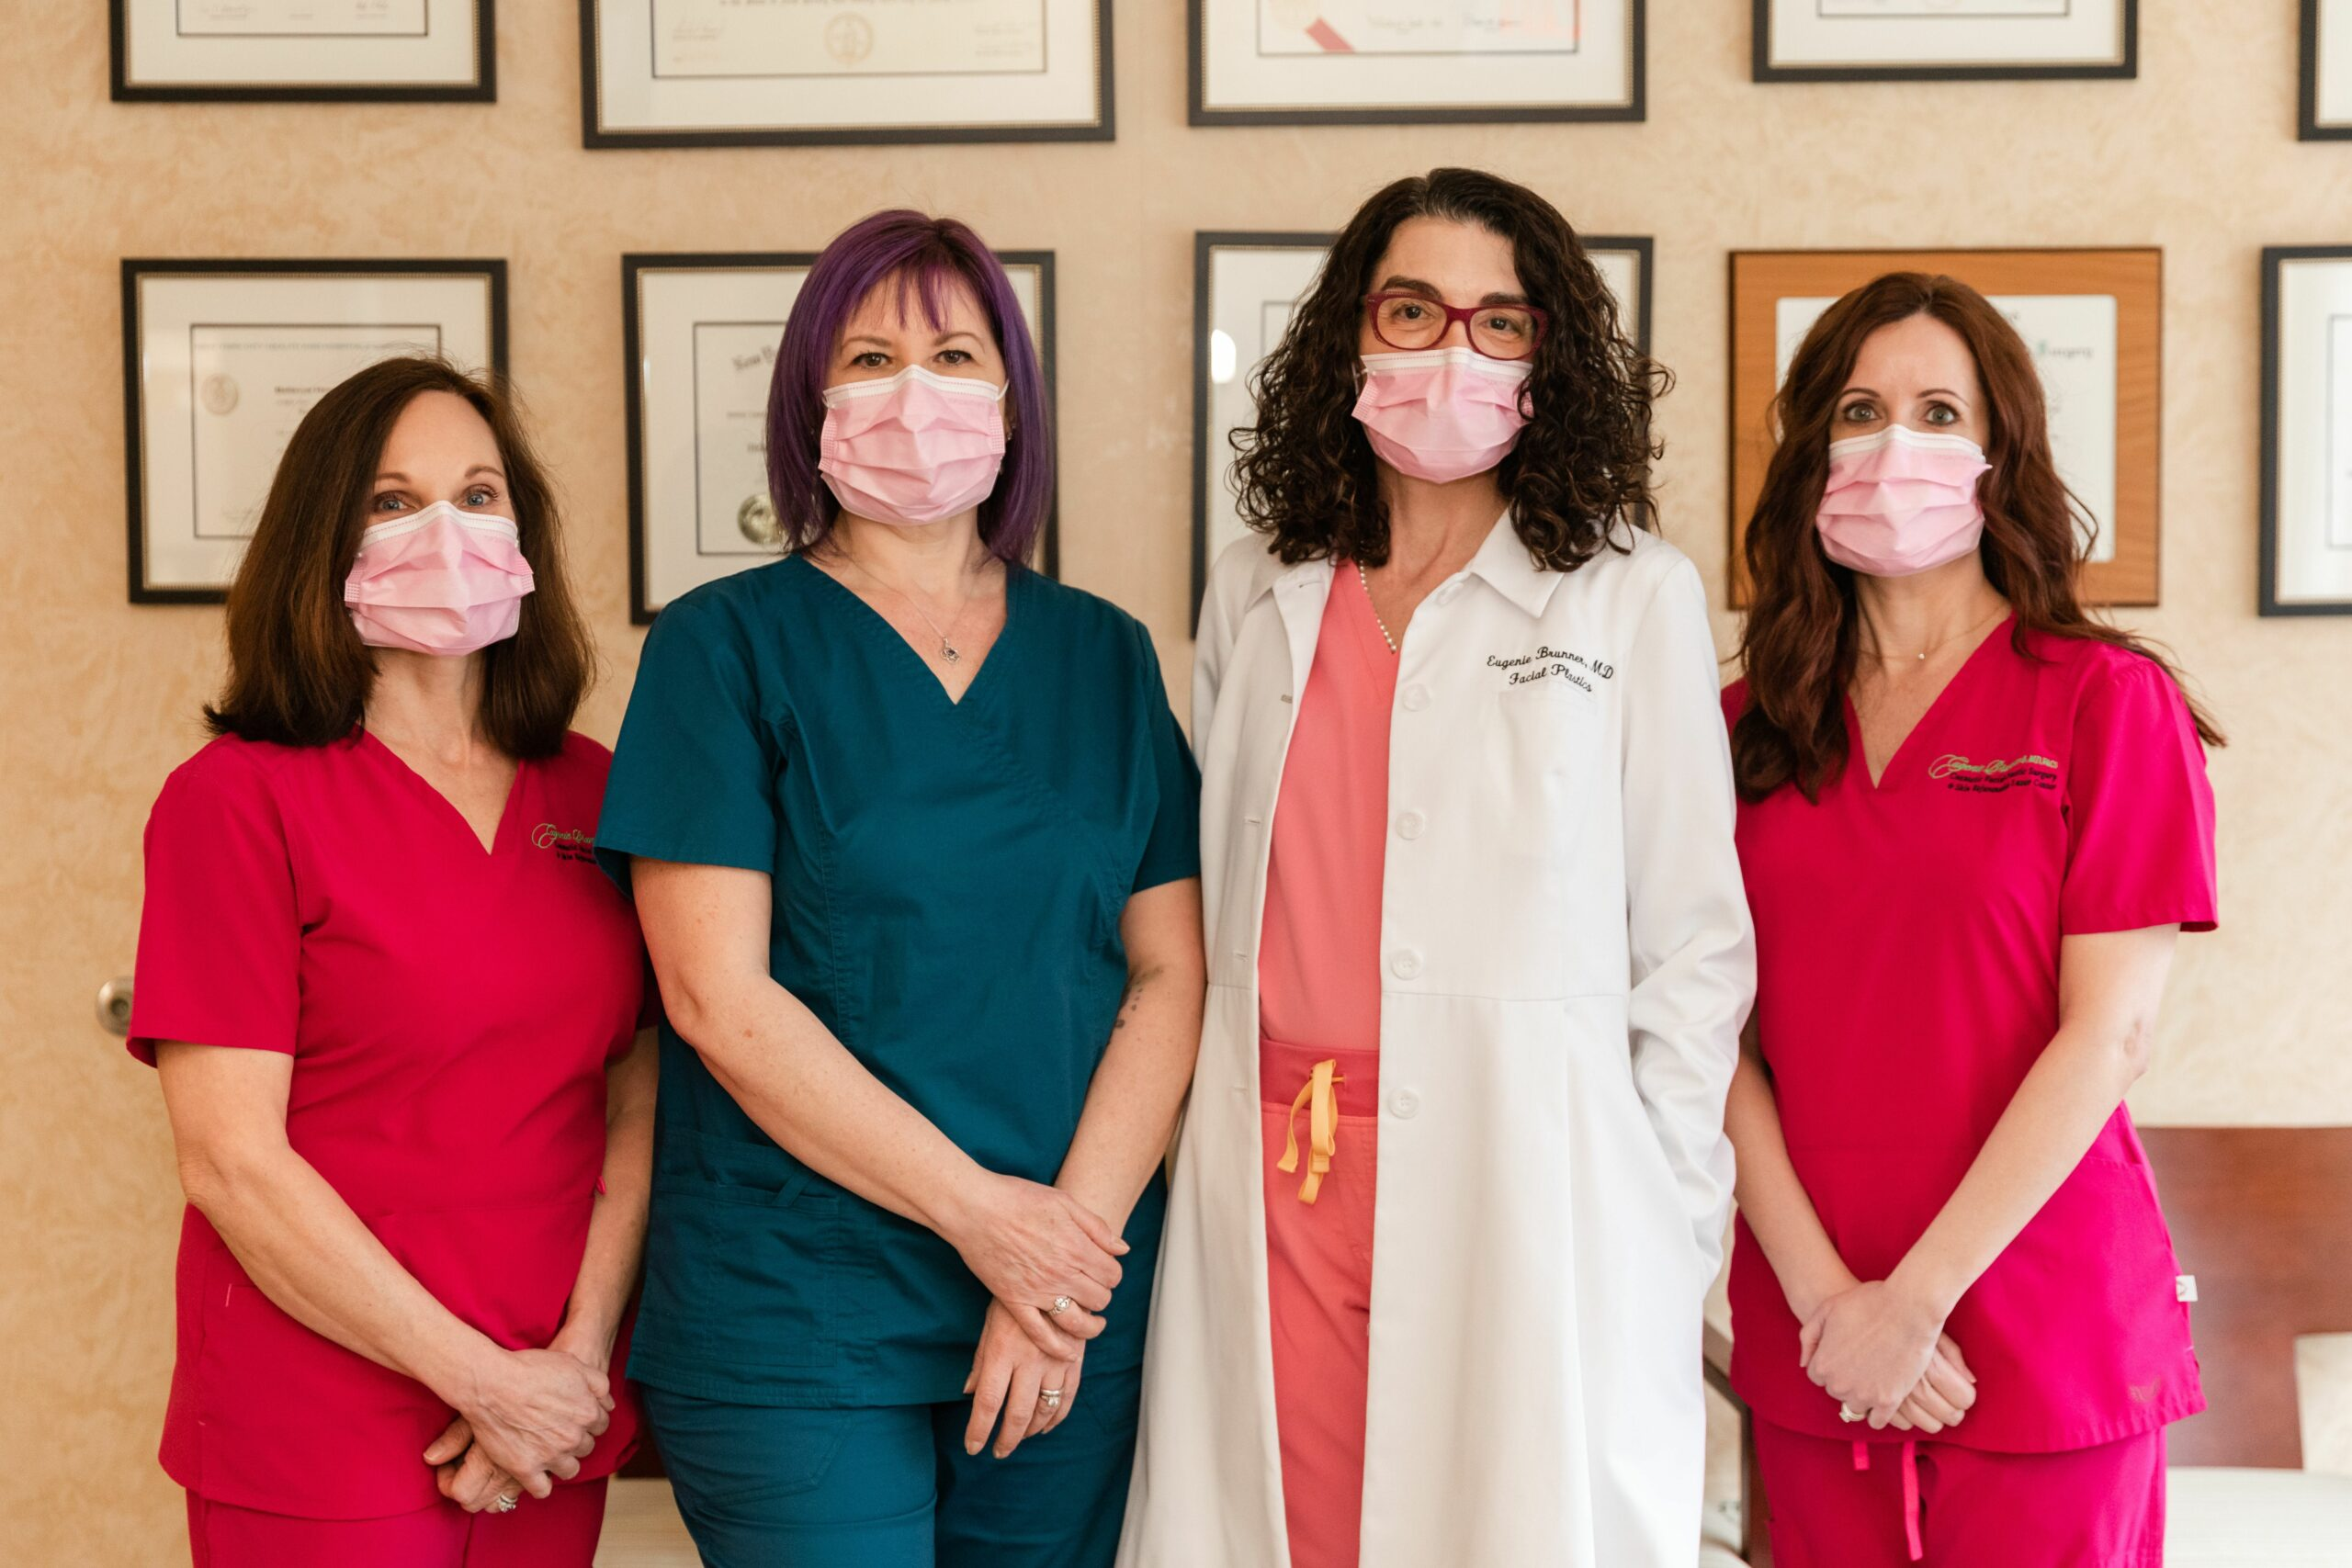 Group photo of Dr. Brunner and her staff with the masks on, Princeton, NJ